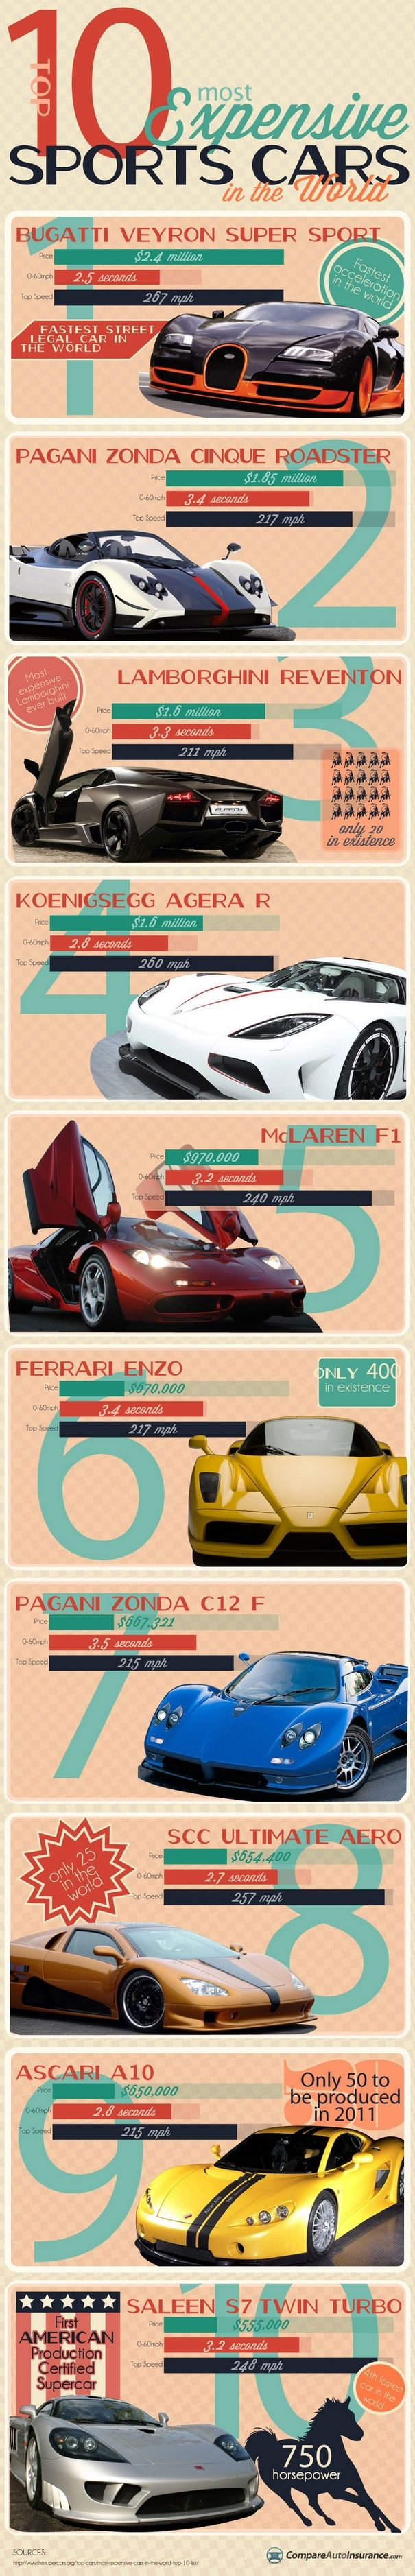 Top 10 Most Expensive Sports Cars in the World Infographic http://www.Carinsurancegreatrates.com Find The Lowest Car Insurance Rate Guaranteed